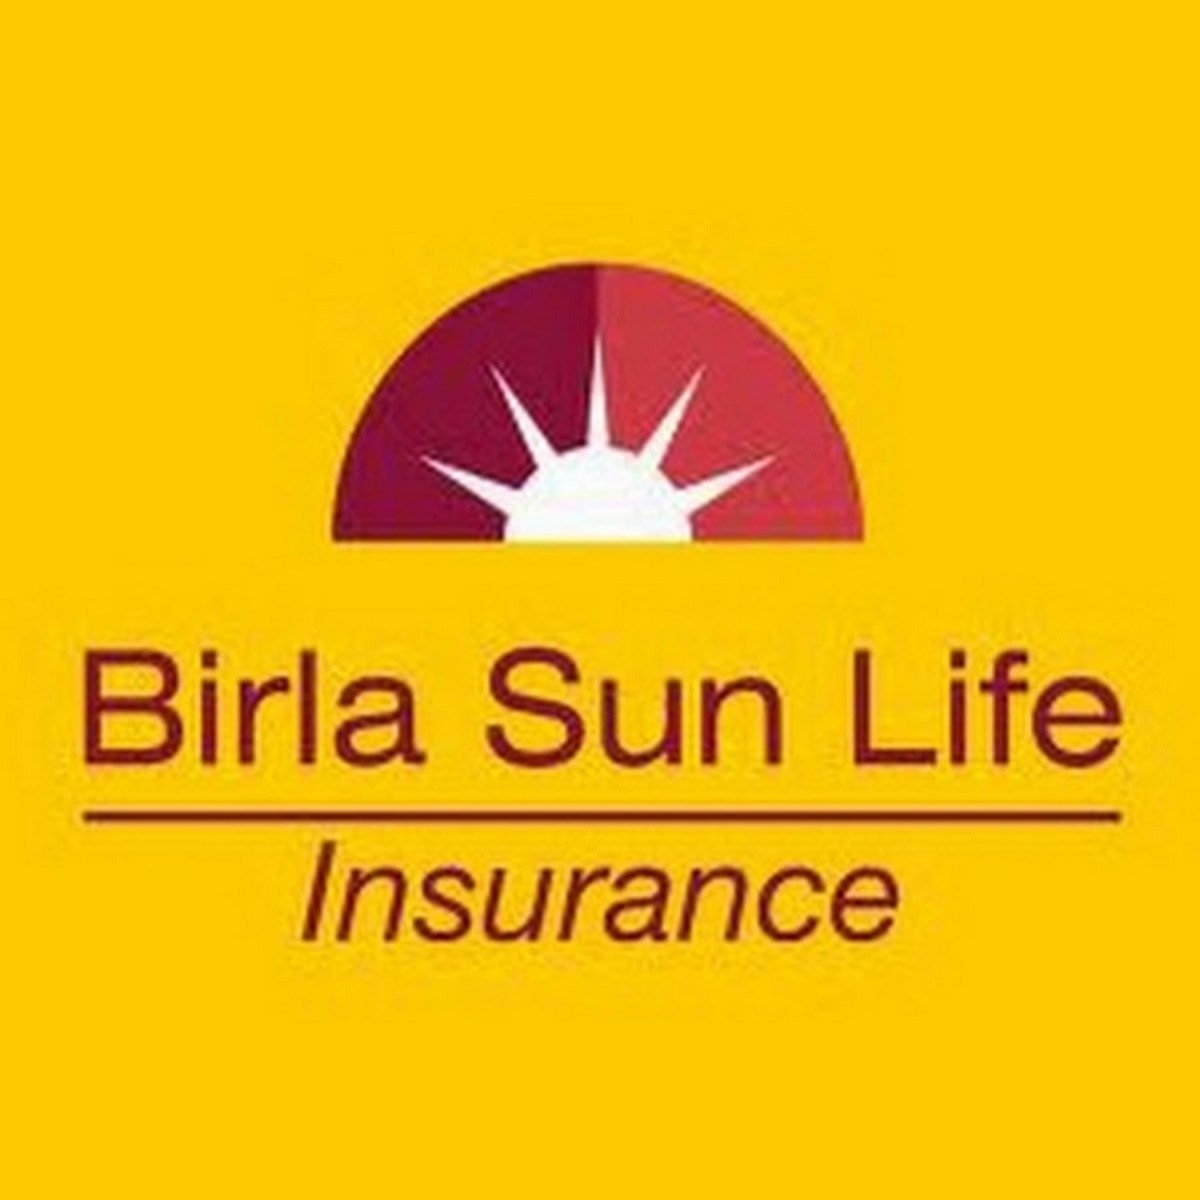 Marketing Mix of Bharti Axa Life Insurance – Bharti Axa Life Insurance Marketing Mix